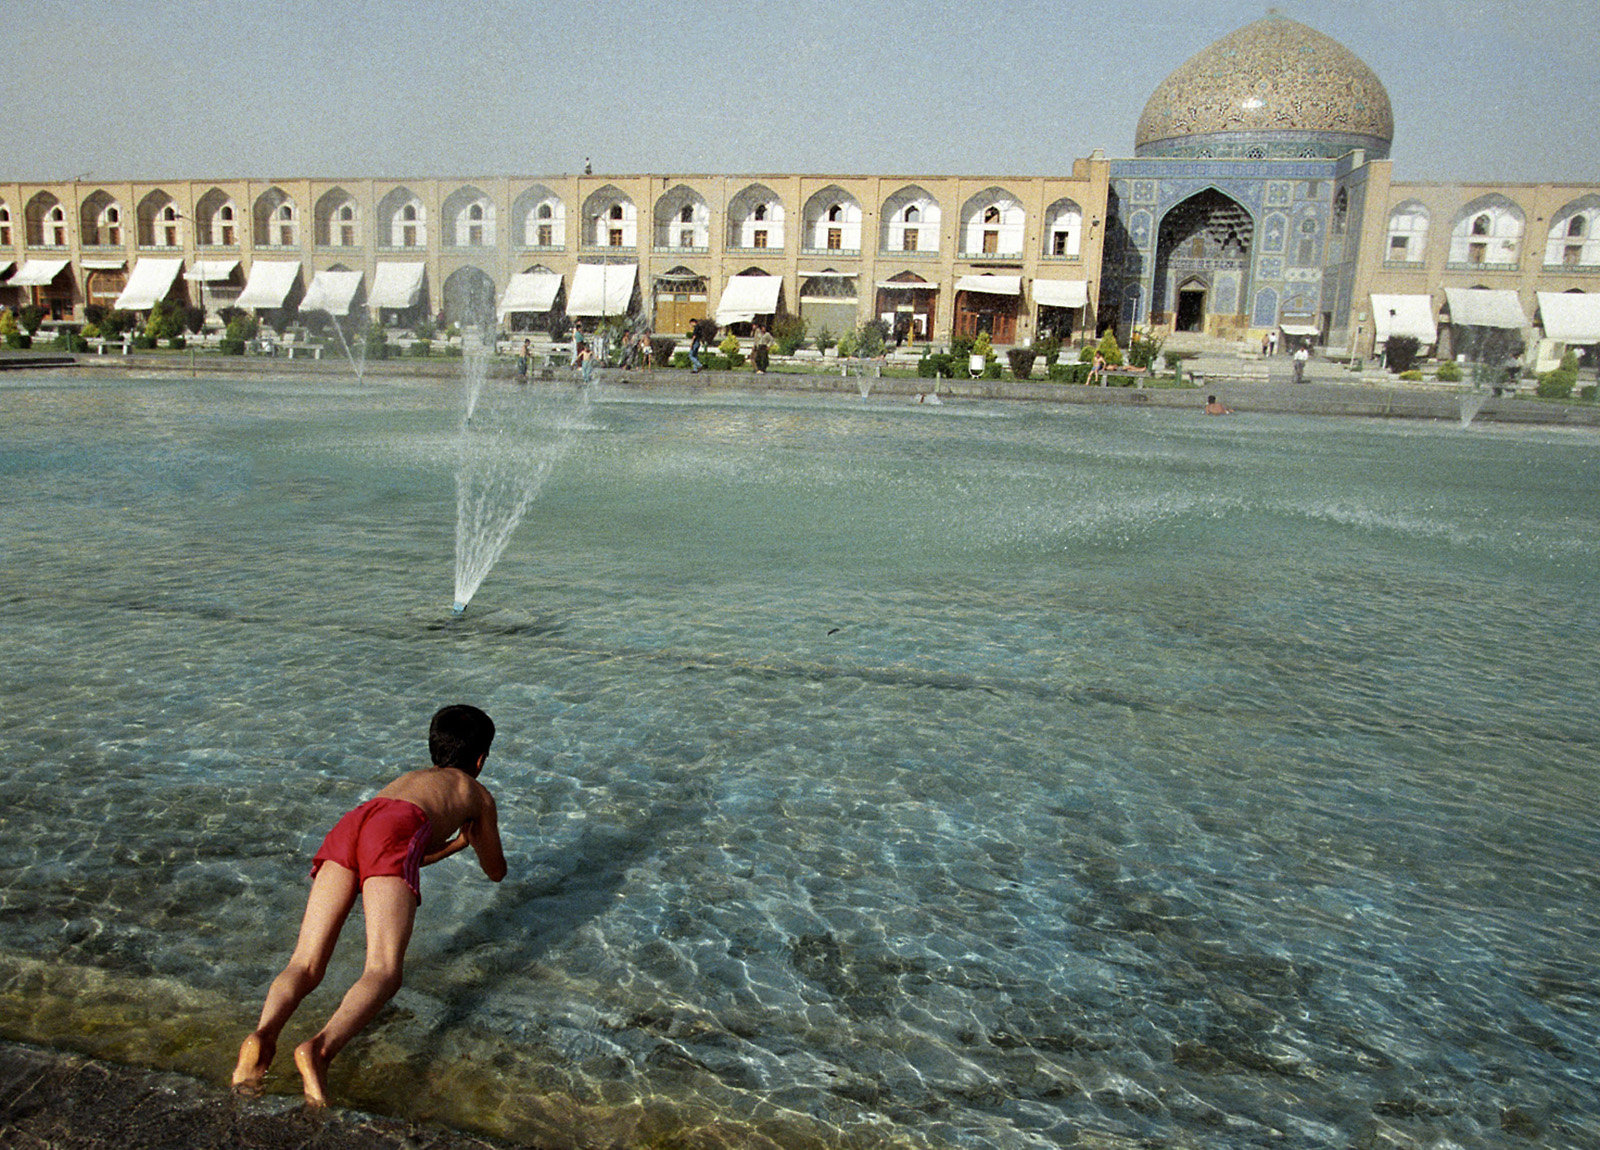 A young boy dives in for a dip in a pool in Iman Khomeini Square in central Esfahan. The Sheik Lotfollah Mosque, built in the 17th century can be seen in the rear.